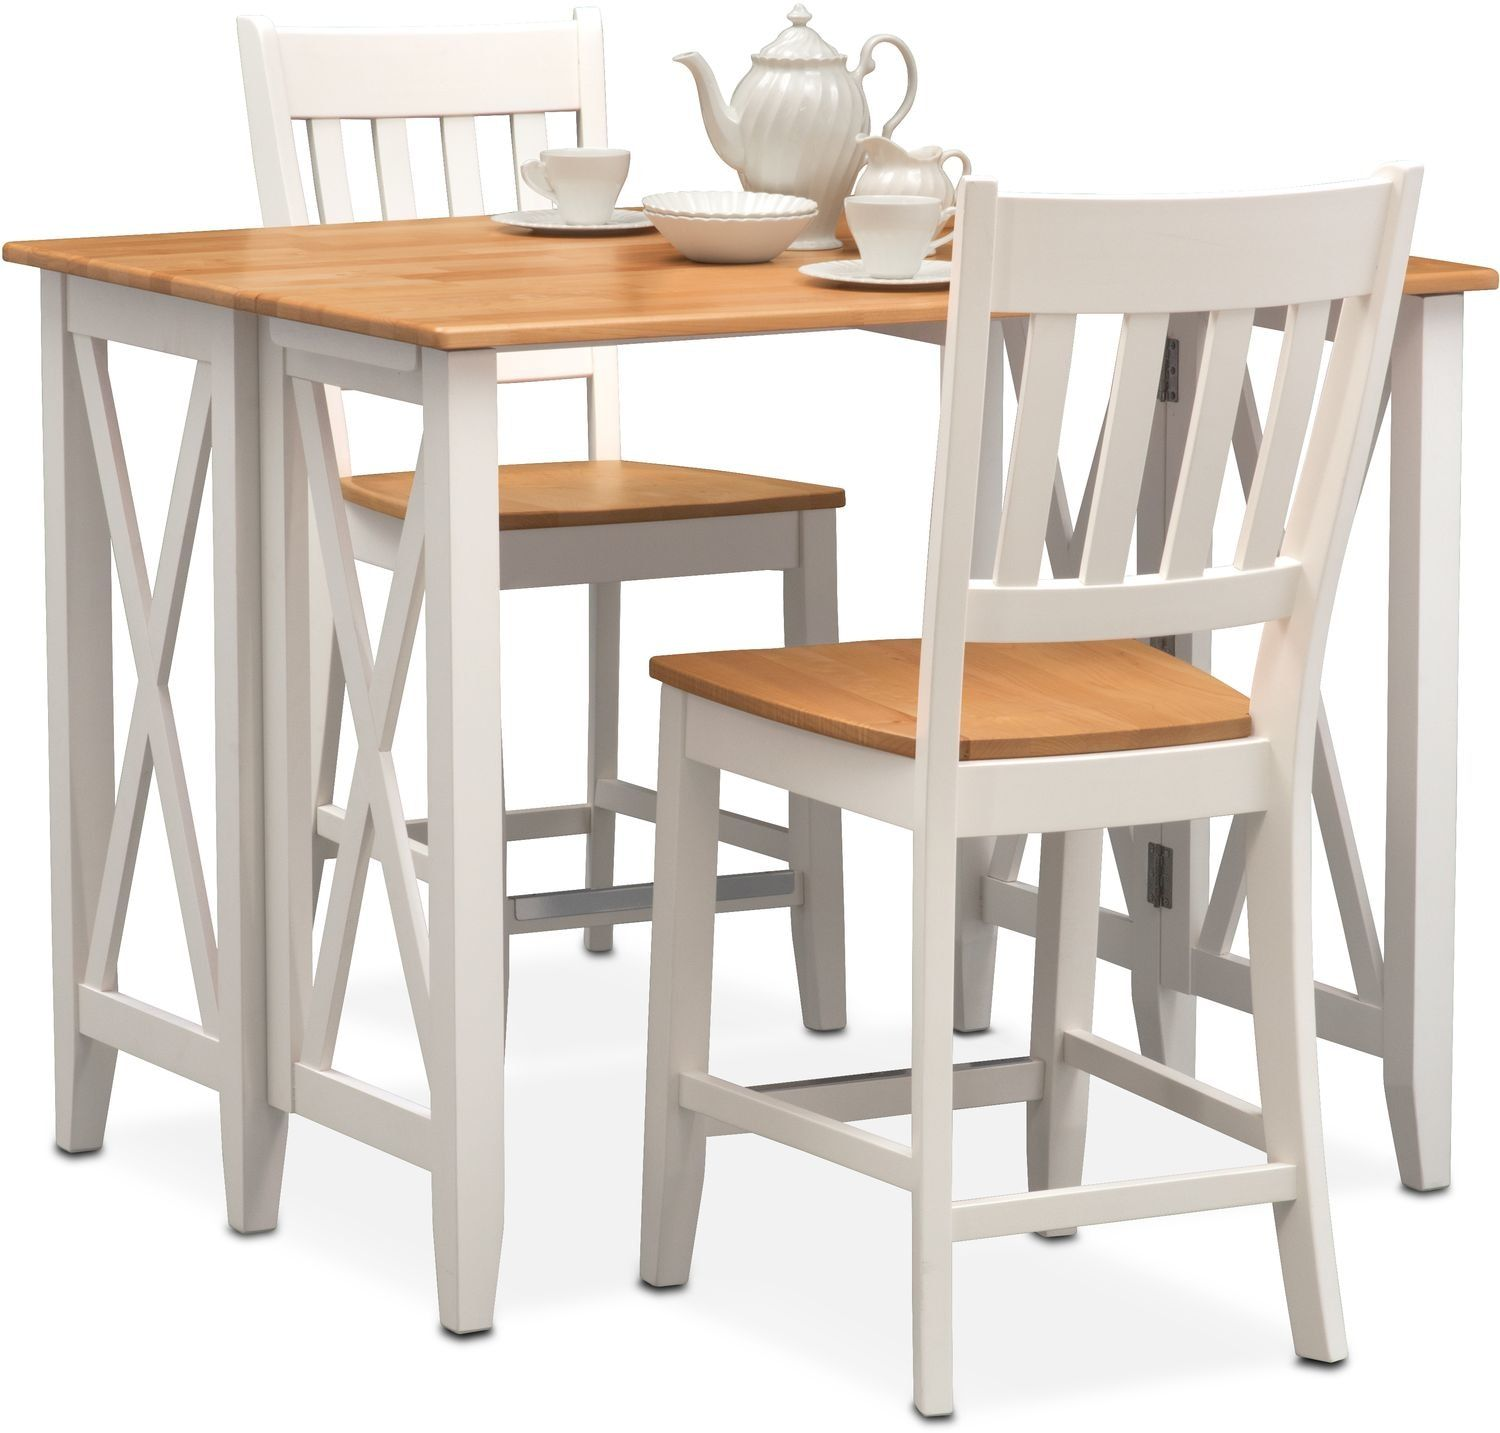 Nantucket Breakfast Bar And 2 Counter Height Slat Back Chairs